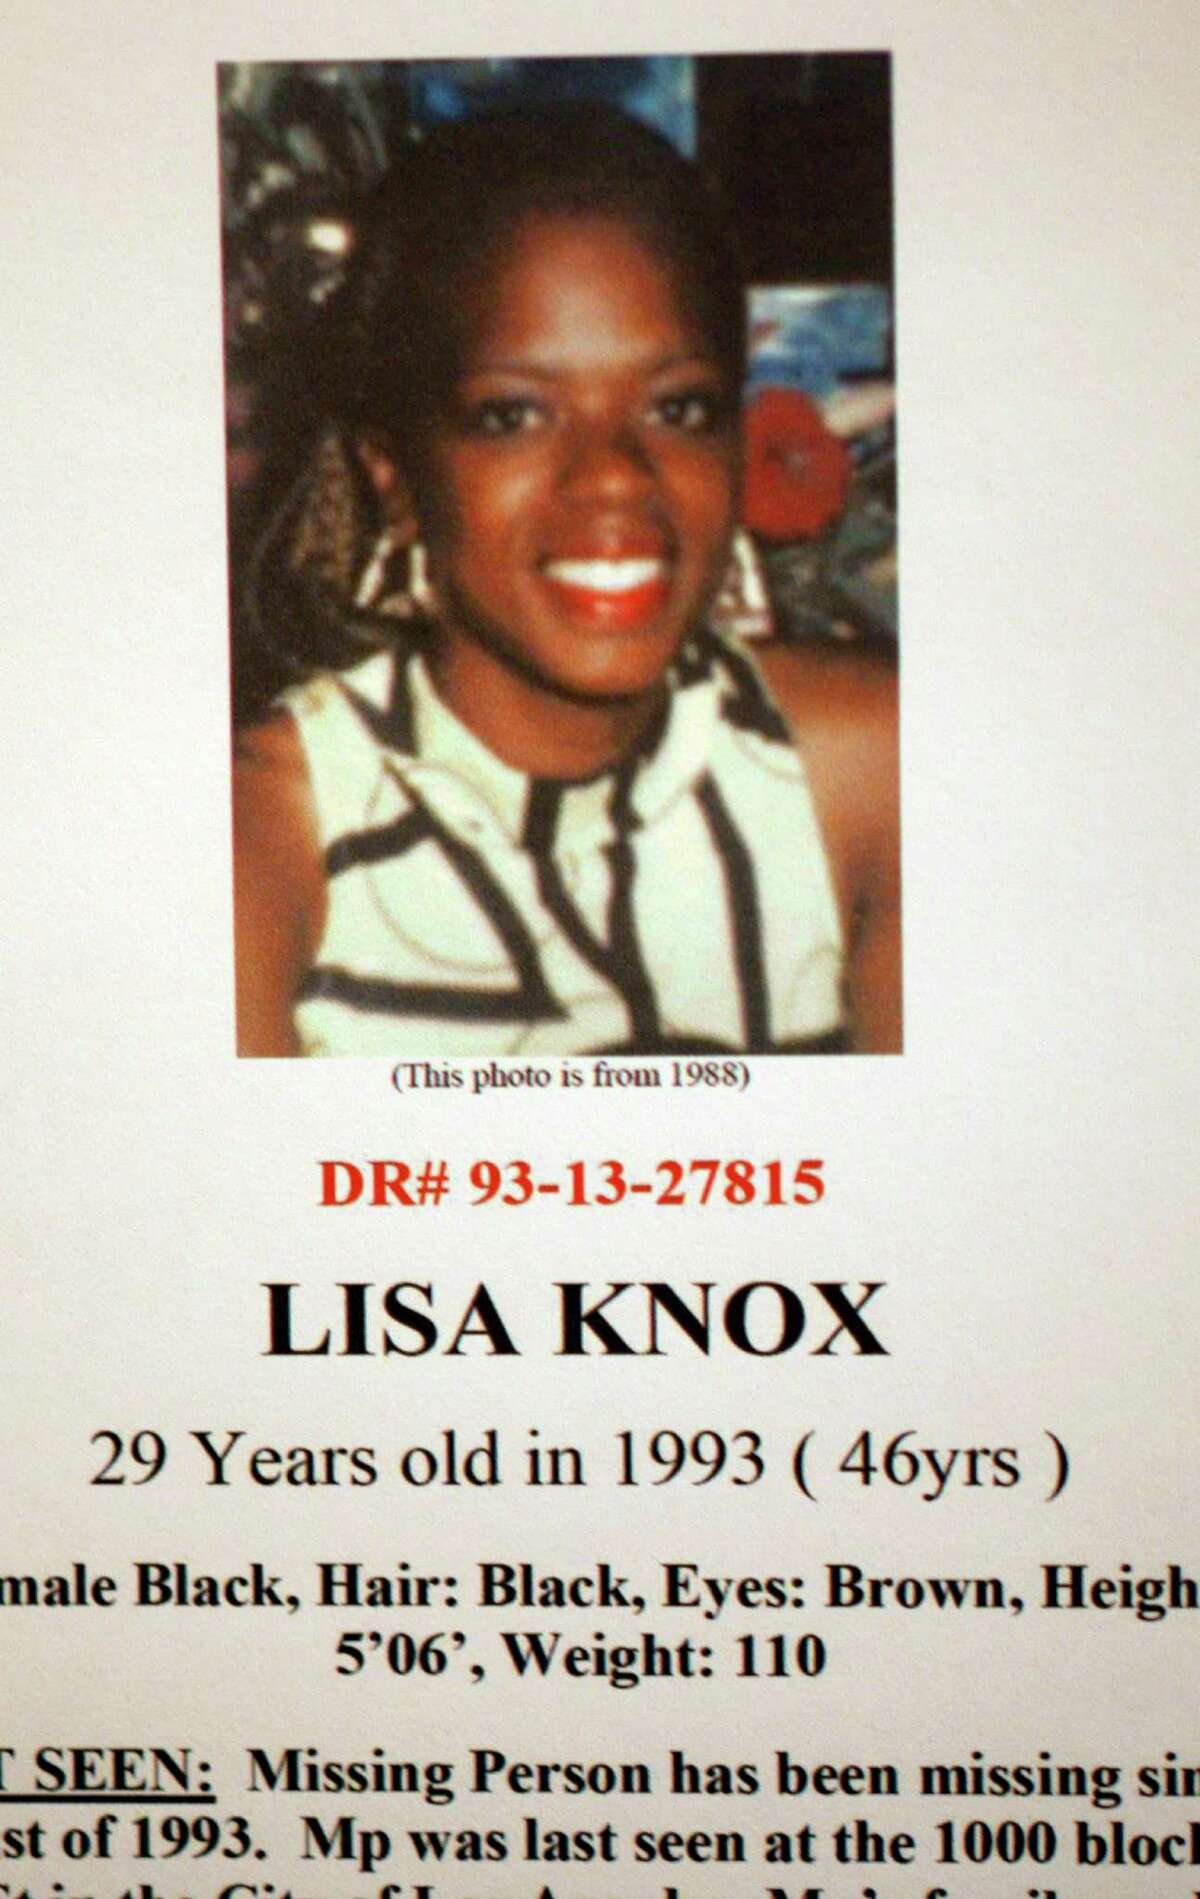 Lisa Knox is one of eight new possible victims in the Lonnie Franklin Jr serial killer Grim Sleeper case. She has been missing since August, 1993. Los Angeles Police Dept detective provided some new information regarding the ongoing investigation ofthe well?-known